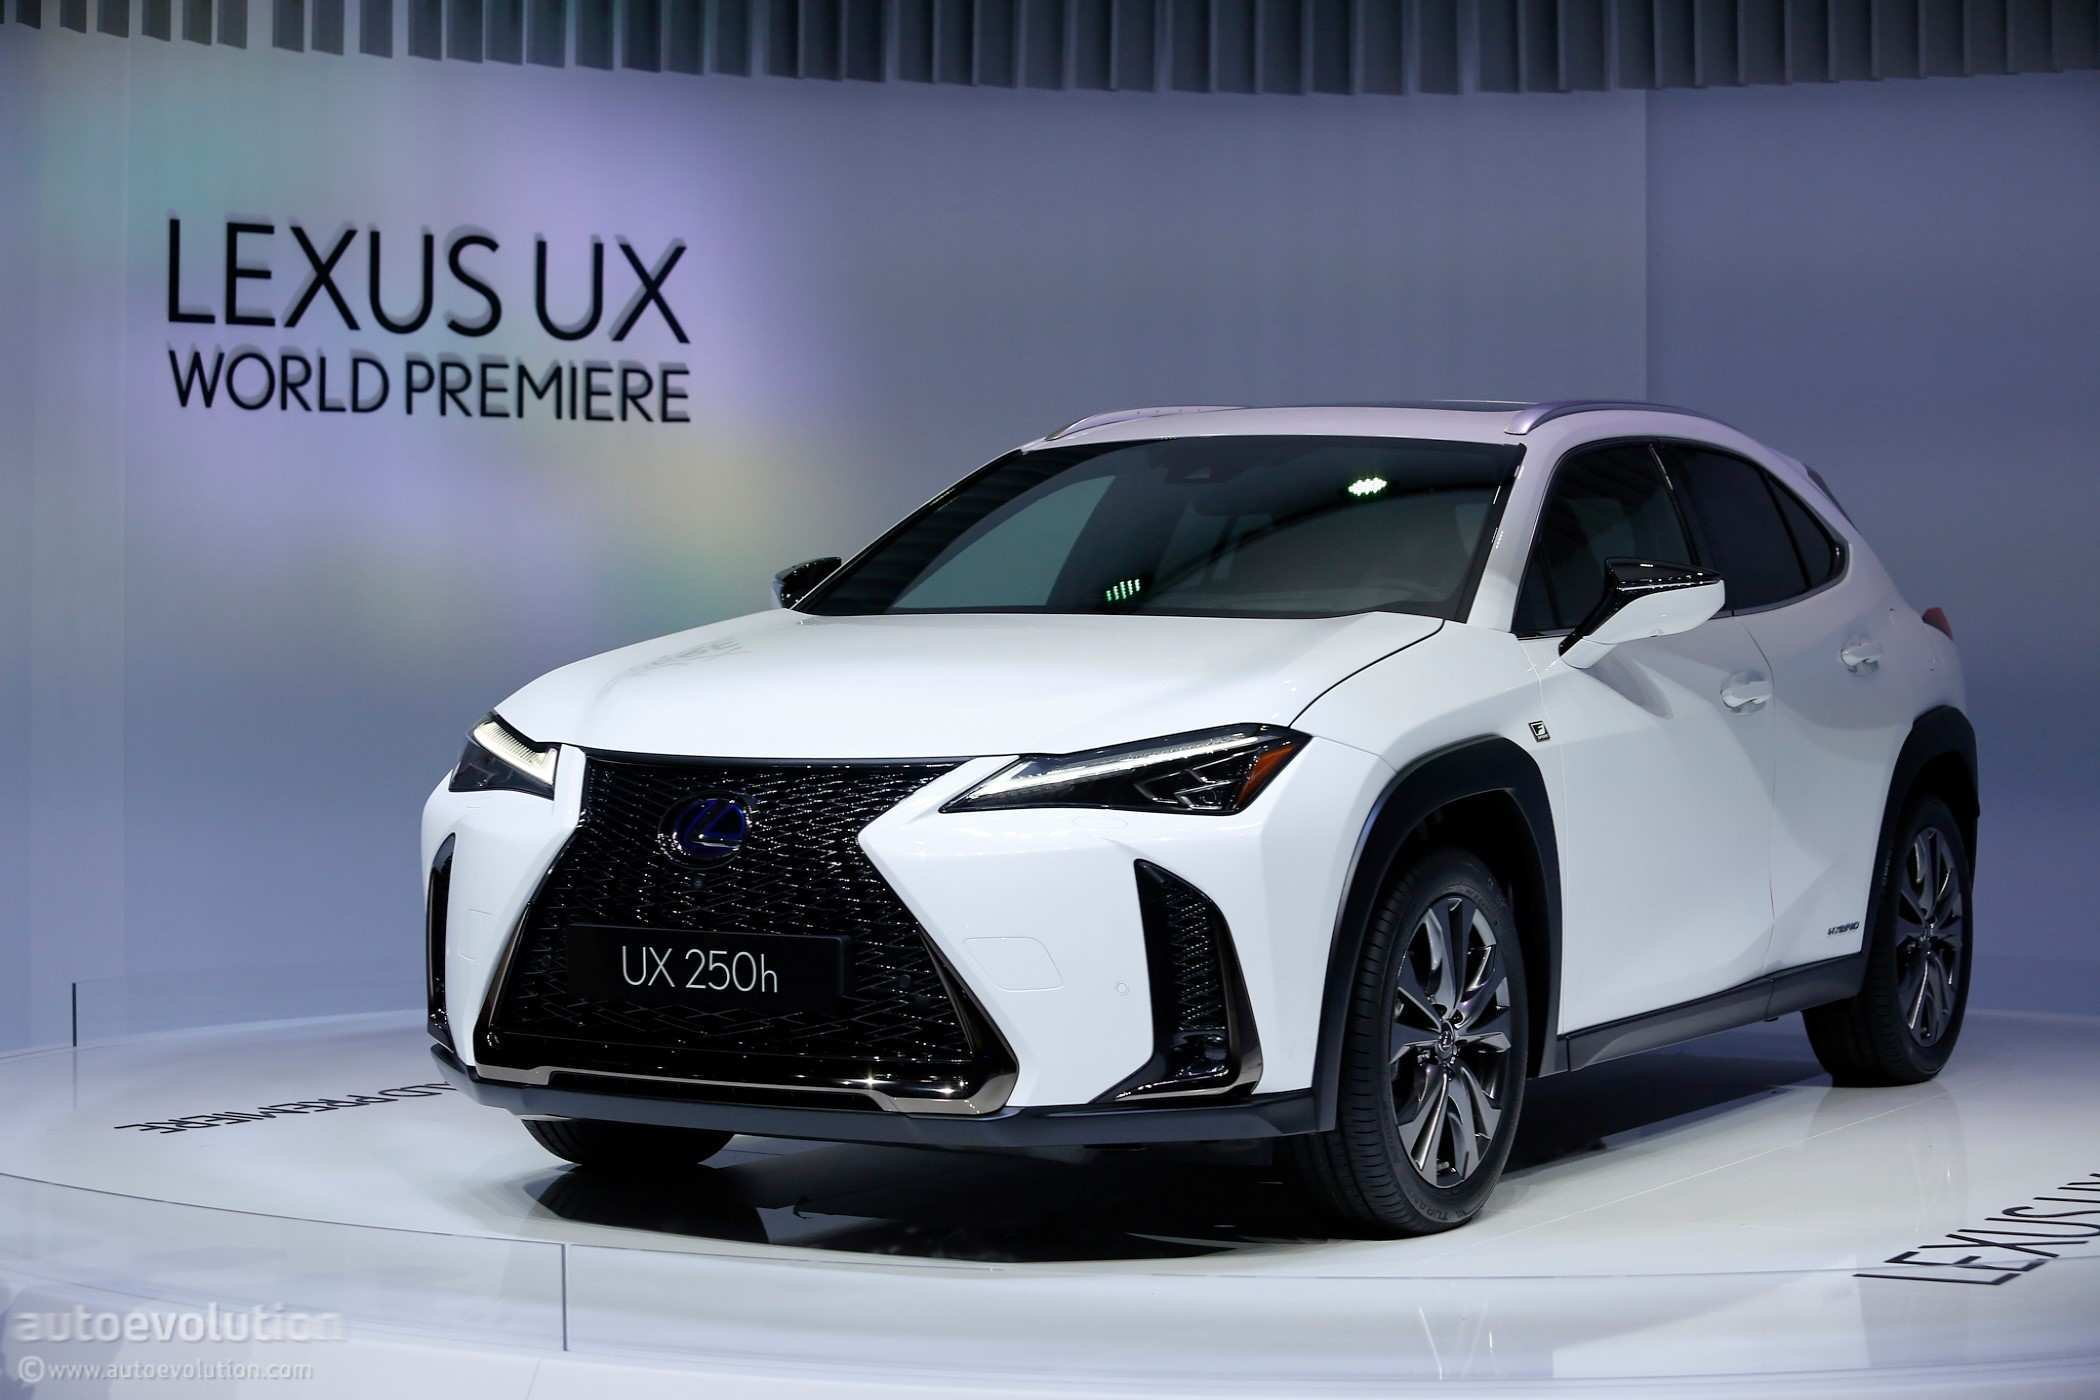 50 All New 2020 Lexus Ux Hybrid Pricing with 2020 Lexus Ux Hybrid